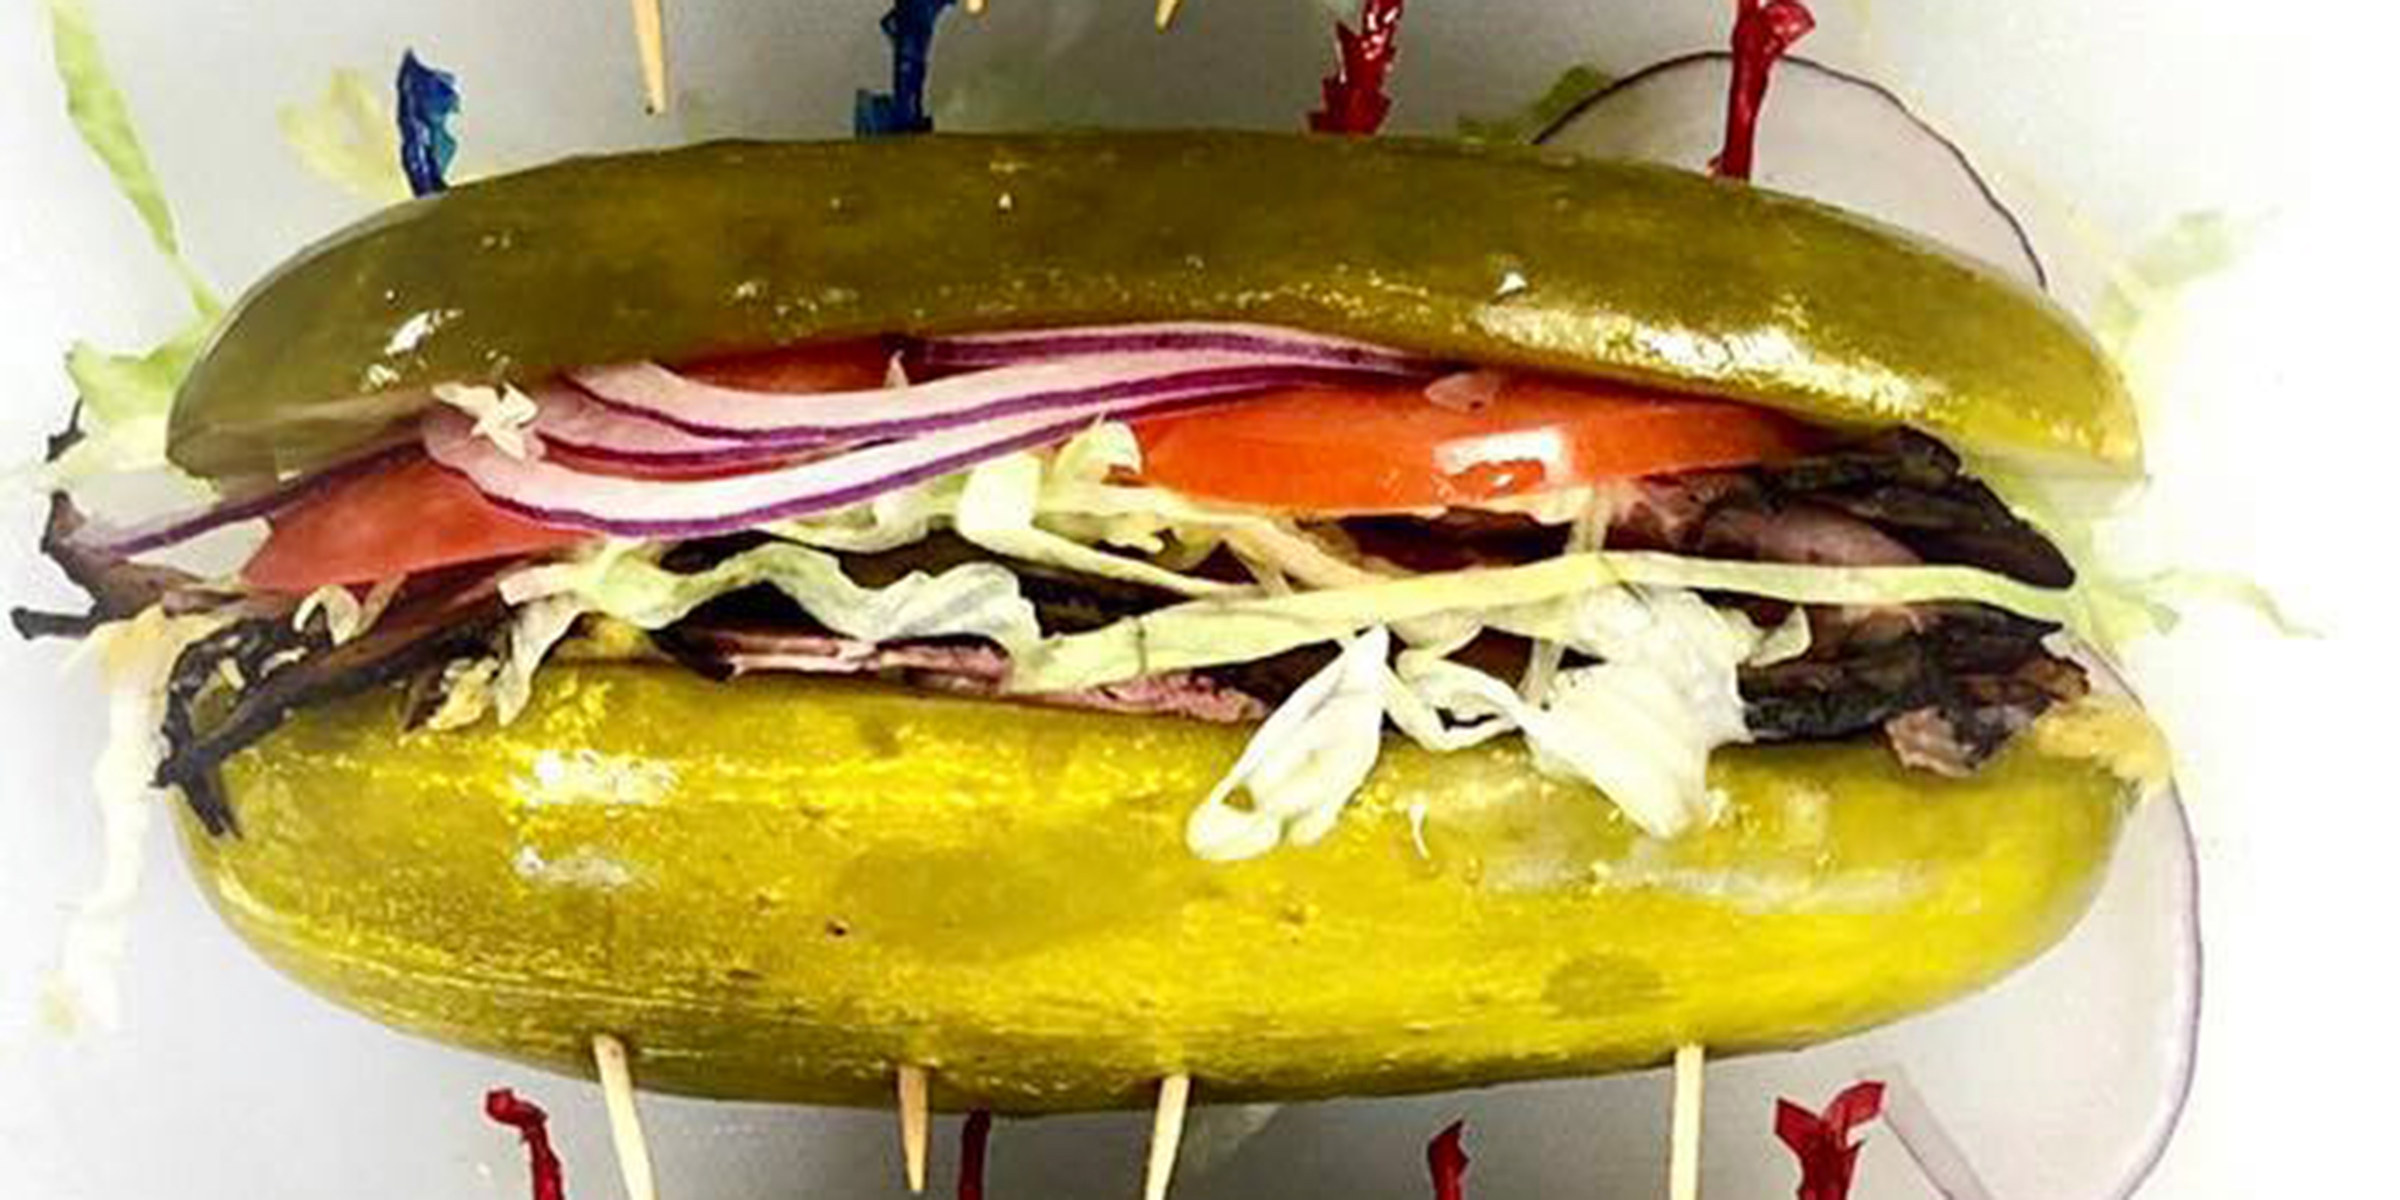 Restaurant replaces bread with pickles for its sandwiches